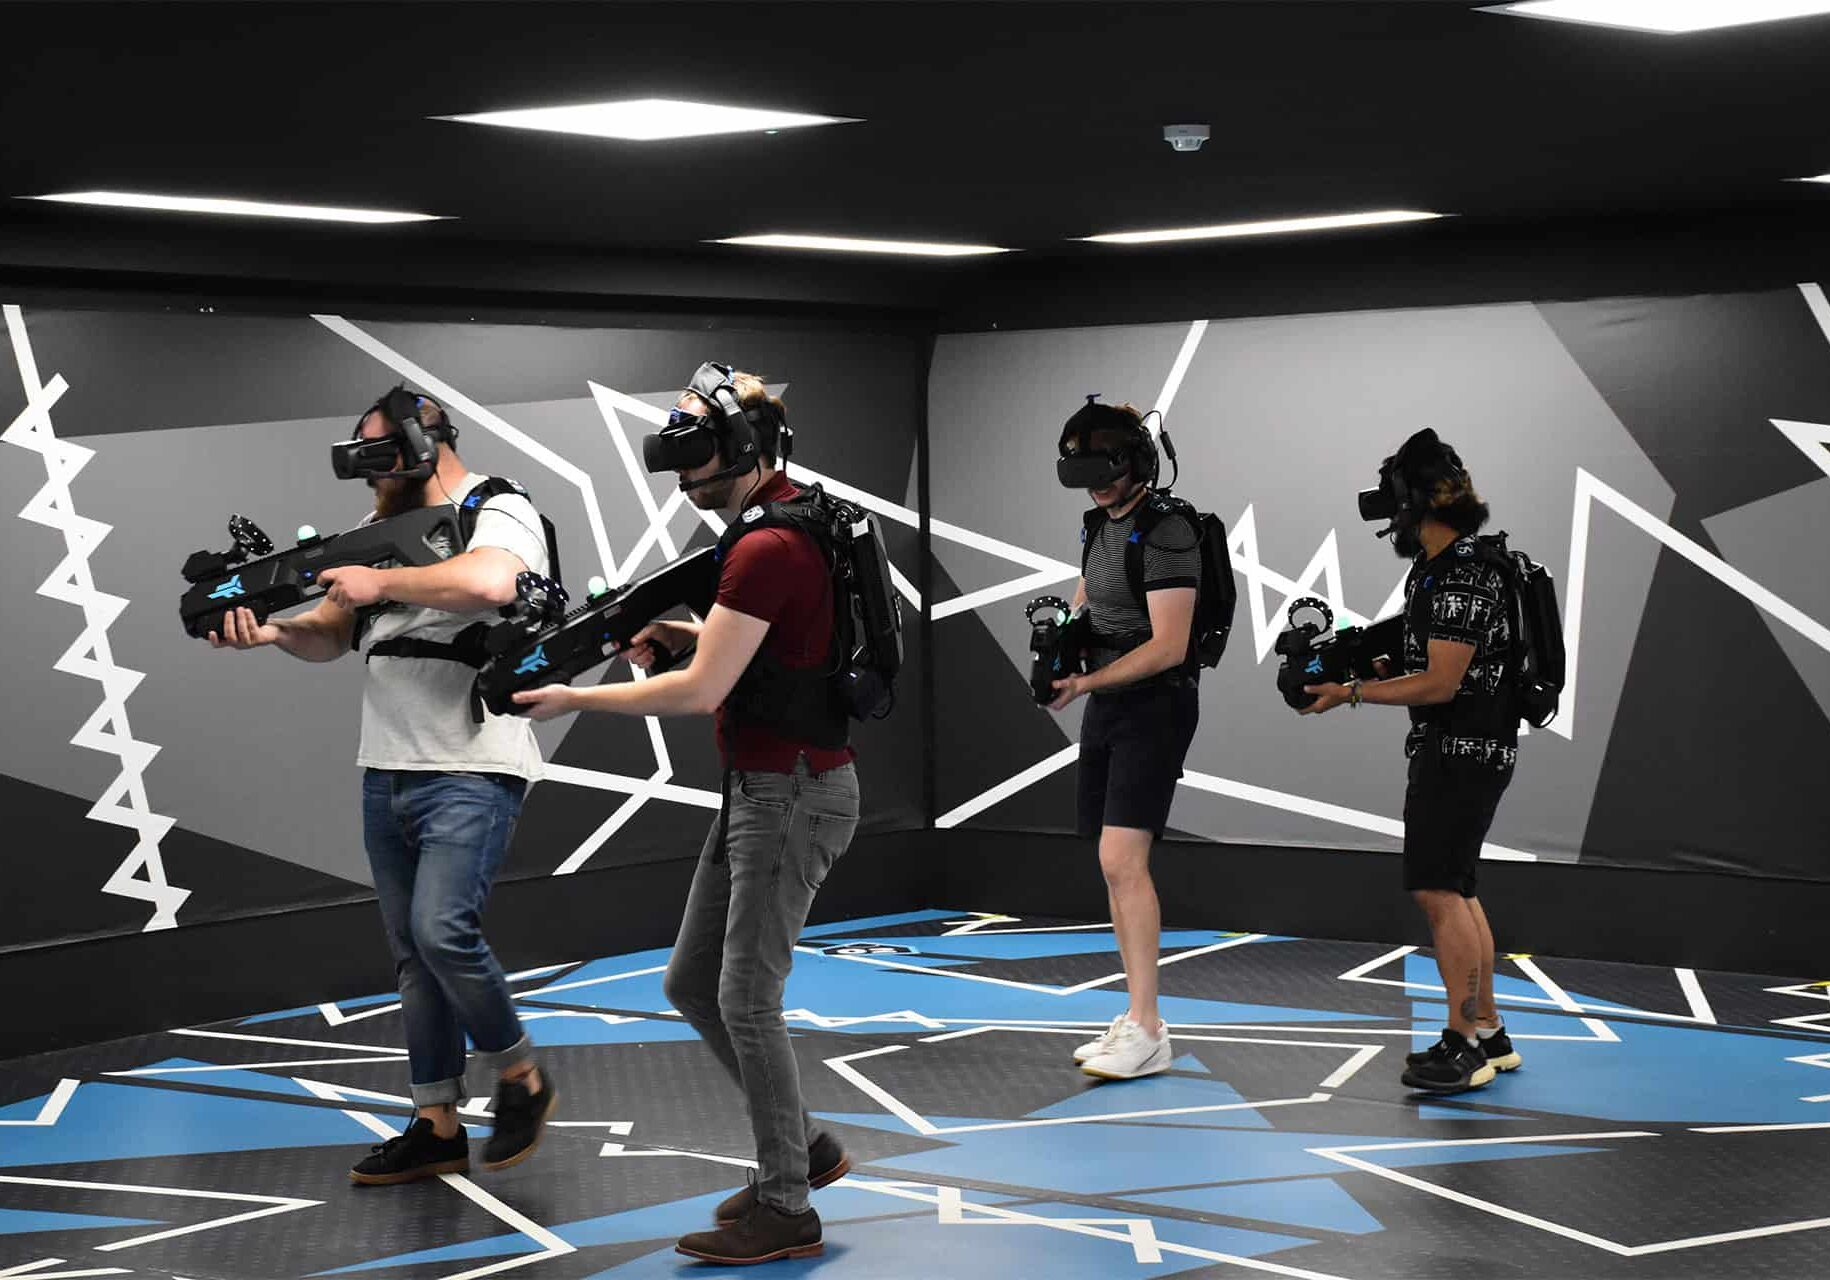 group vr experience